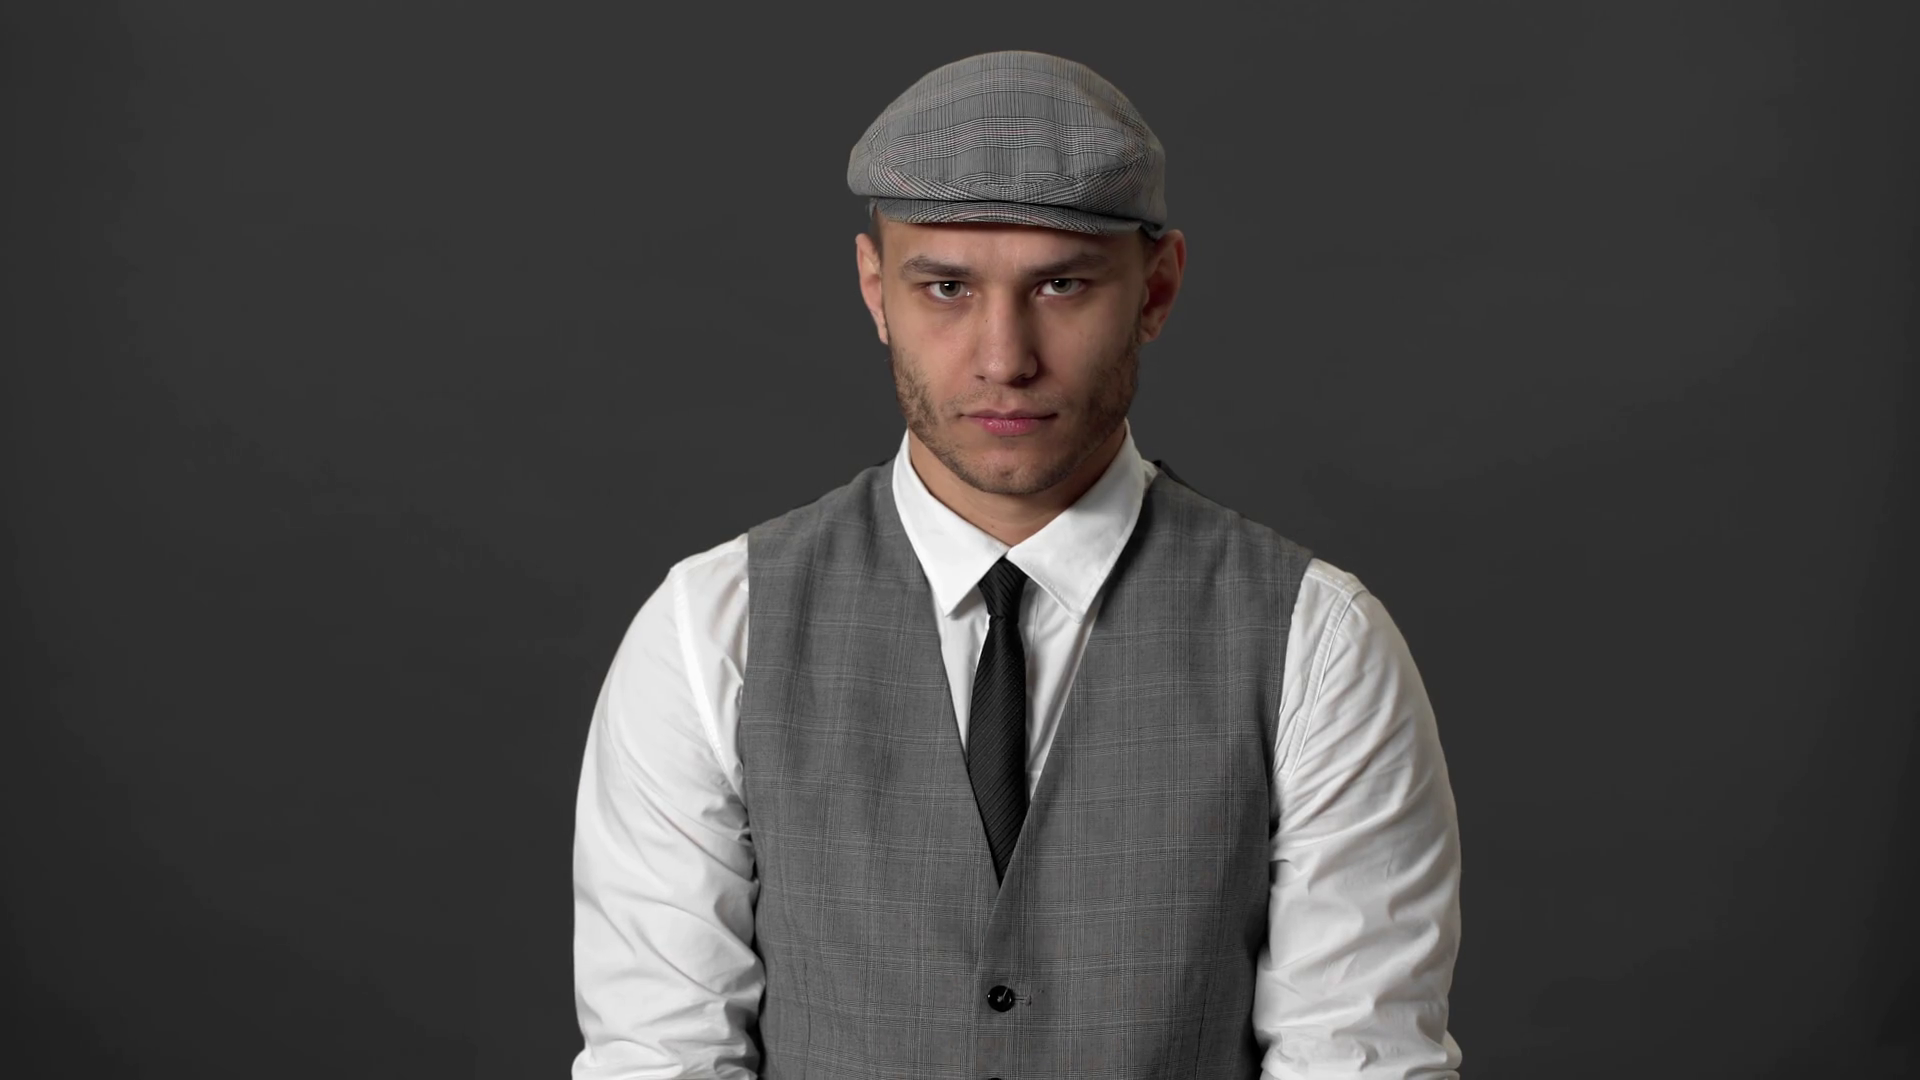 Portrait of stylish guy wearing suit and flat cap posing on camera ...